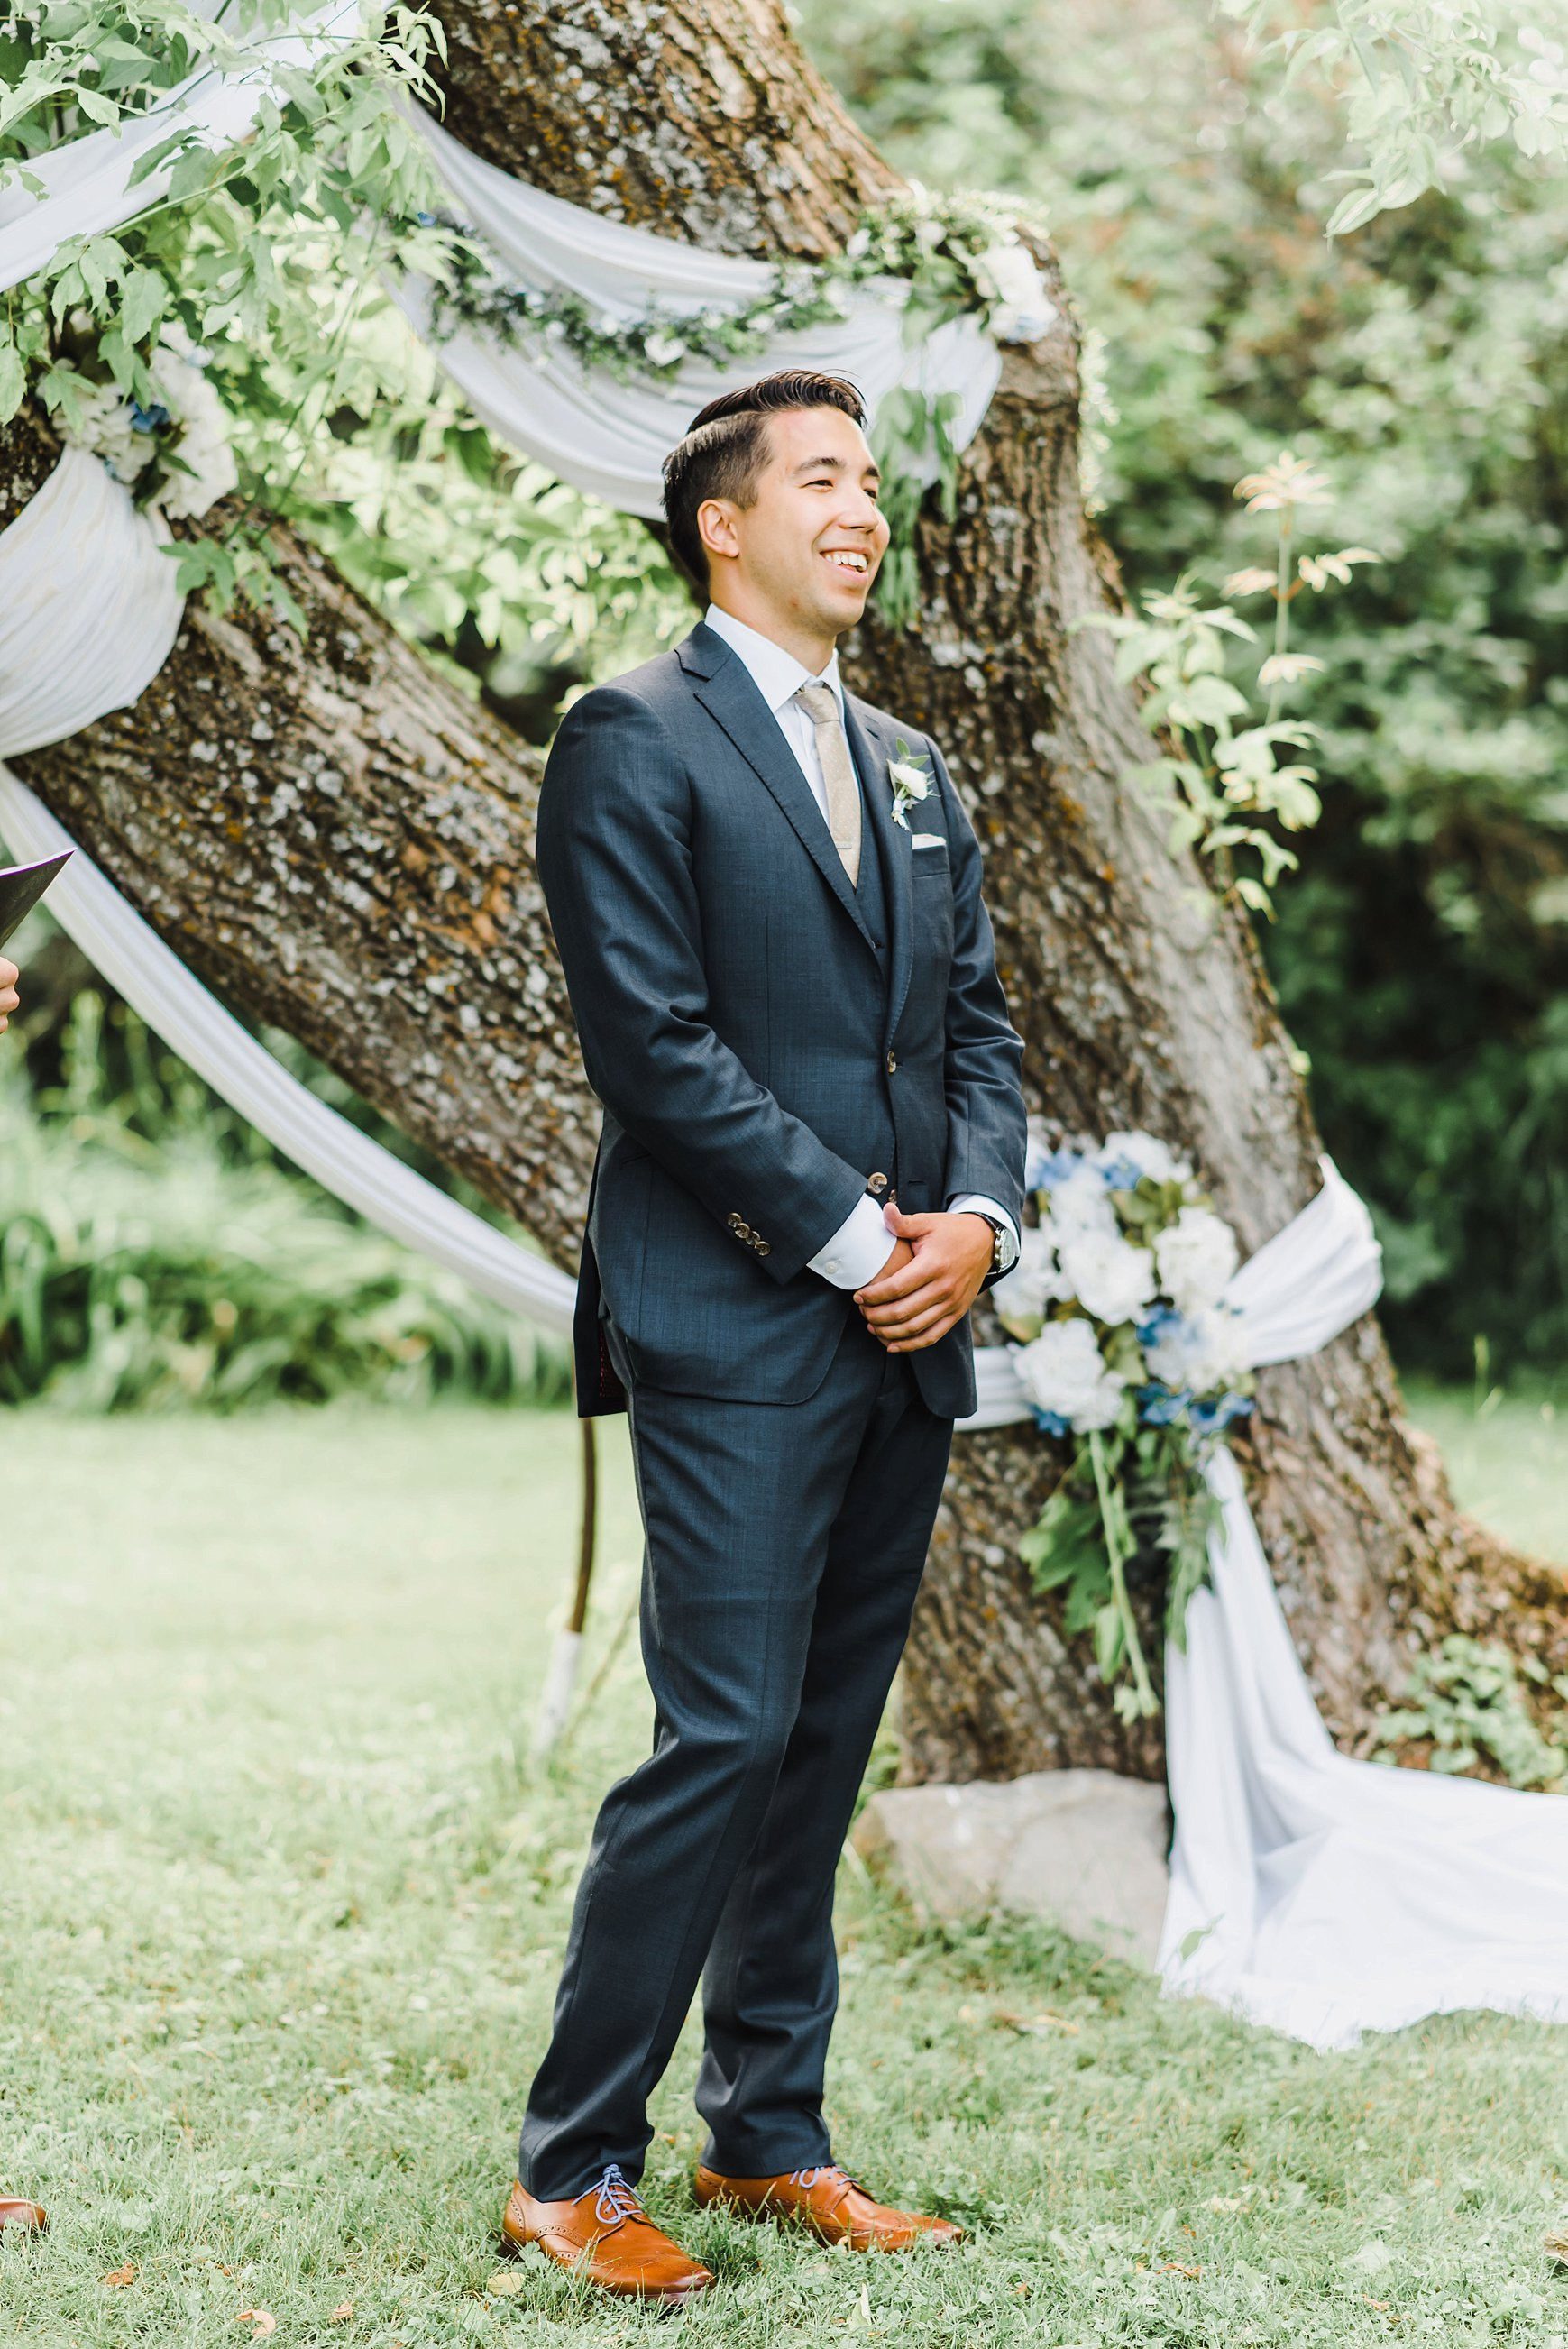 Kendrick seeing his wife for the first time down the aisle.